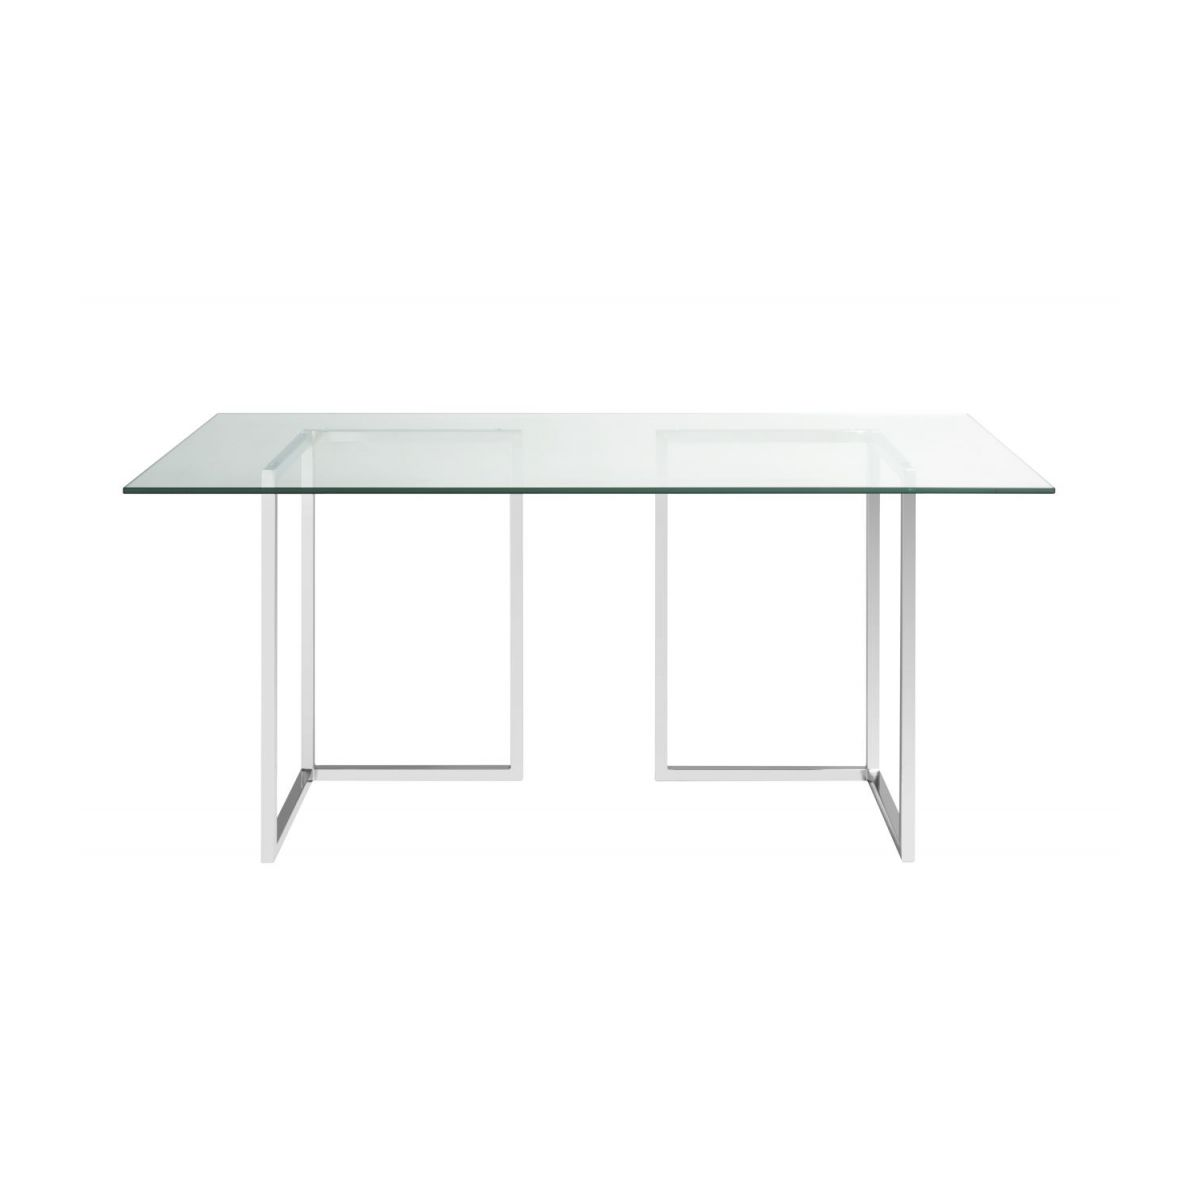 Pied Table En Verre Lagon Plateau De Table En Verre 180x80cm